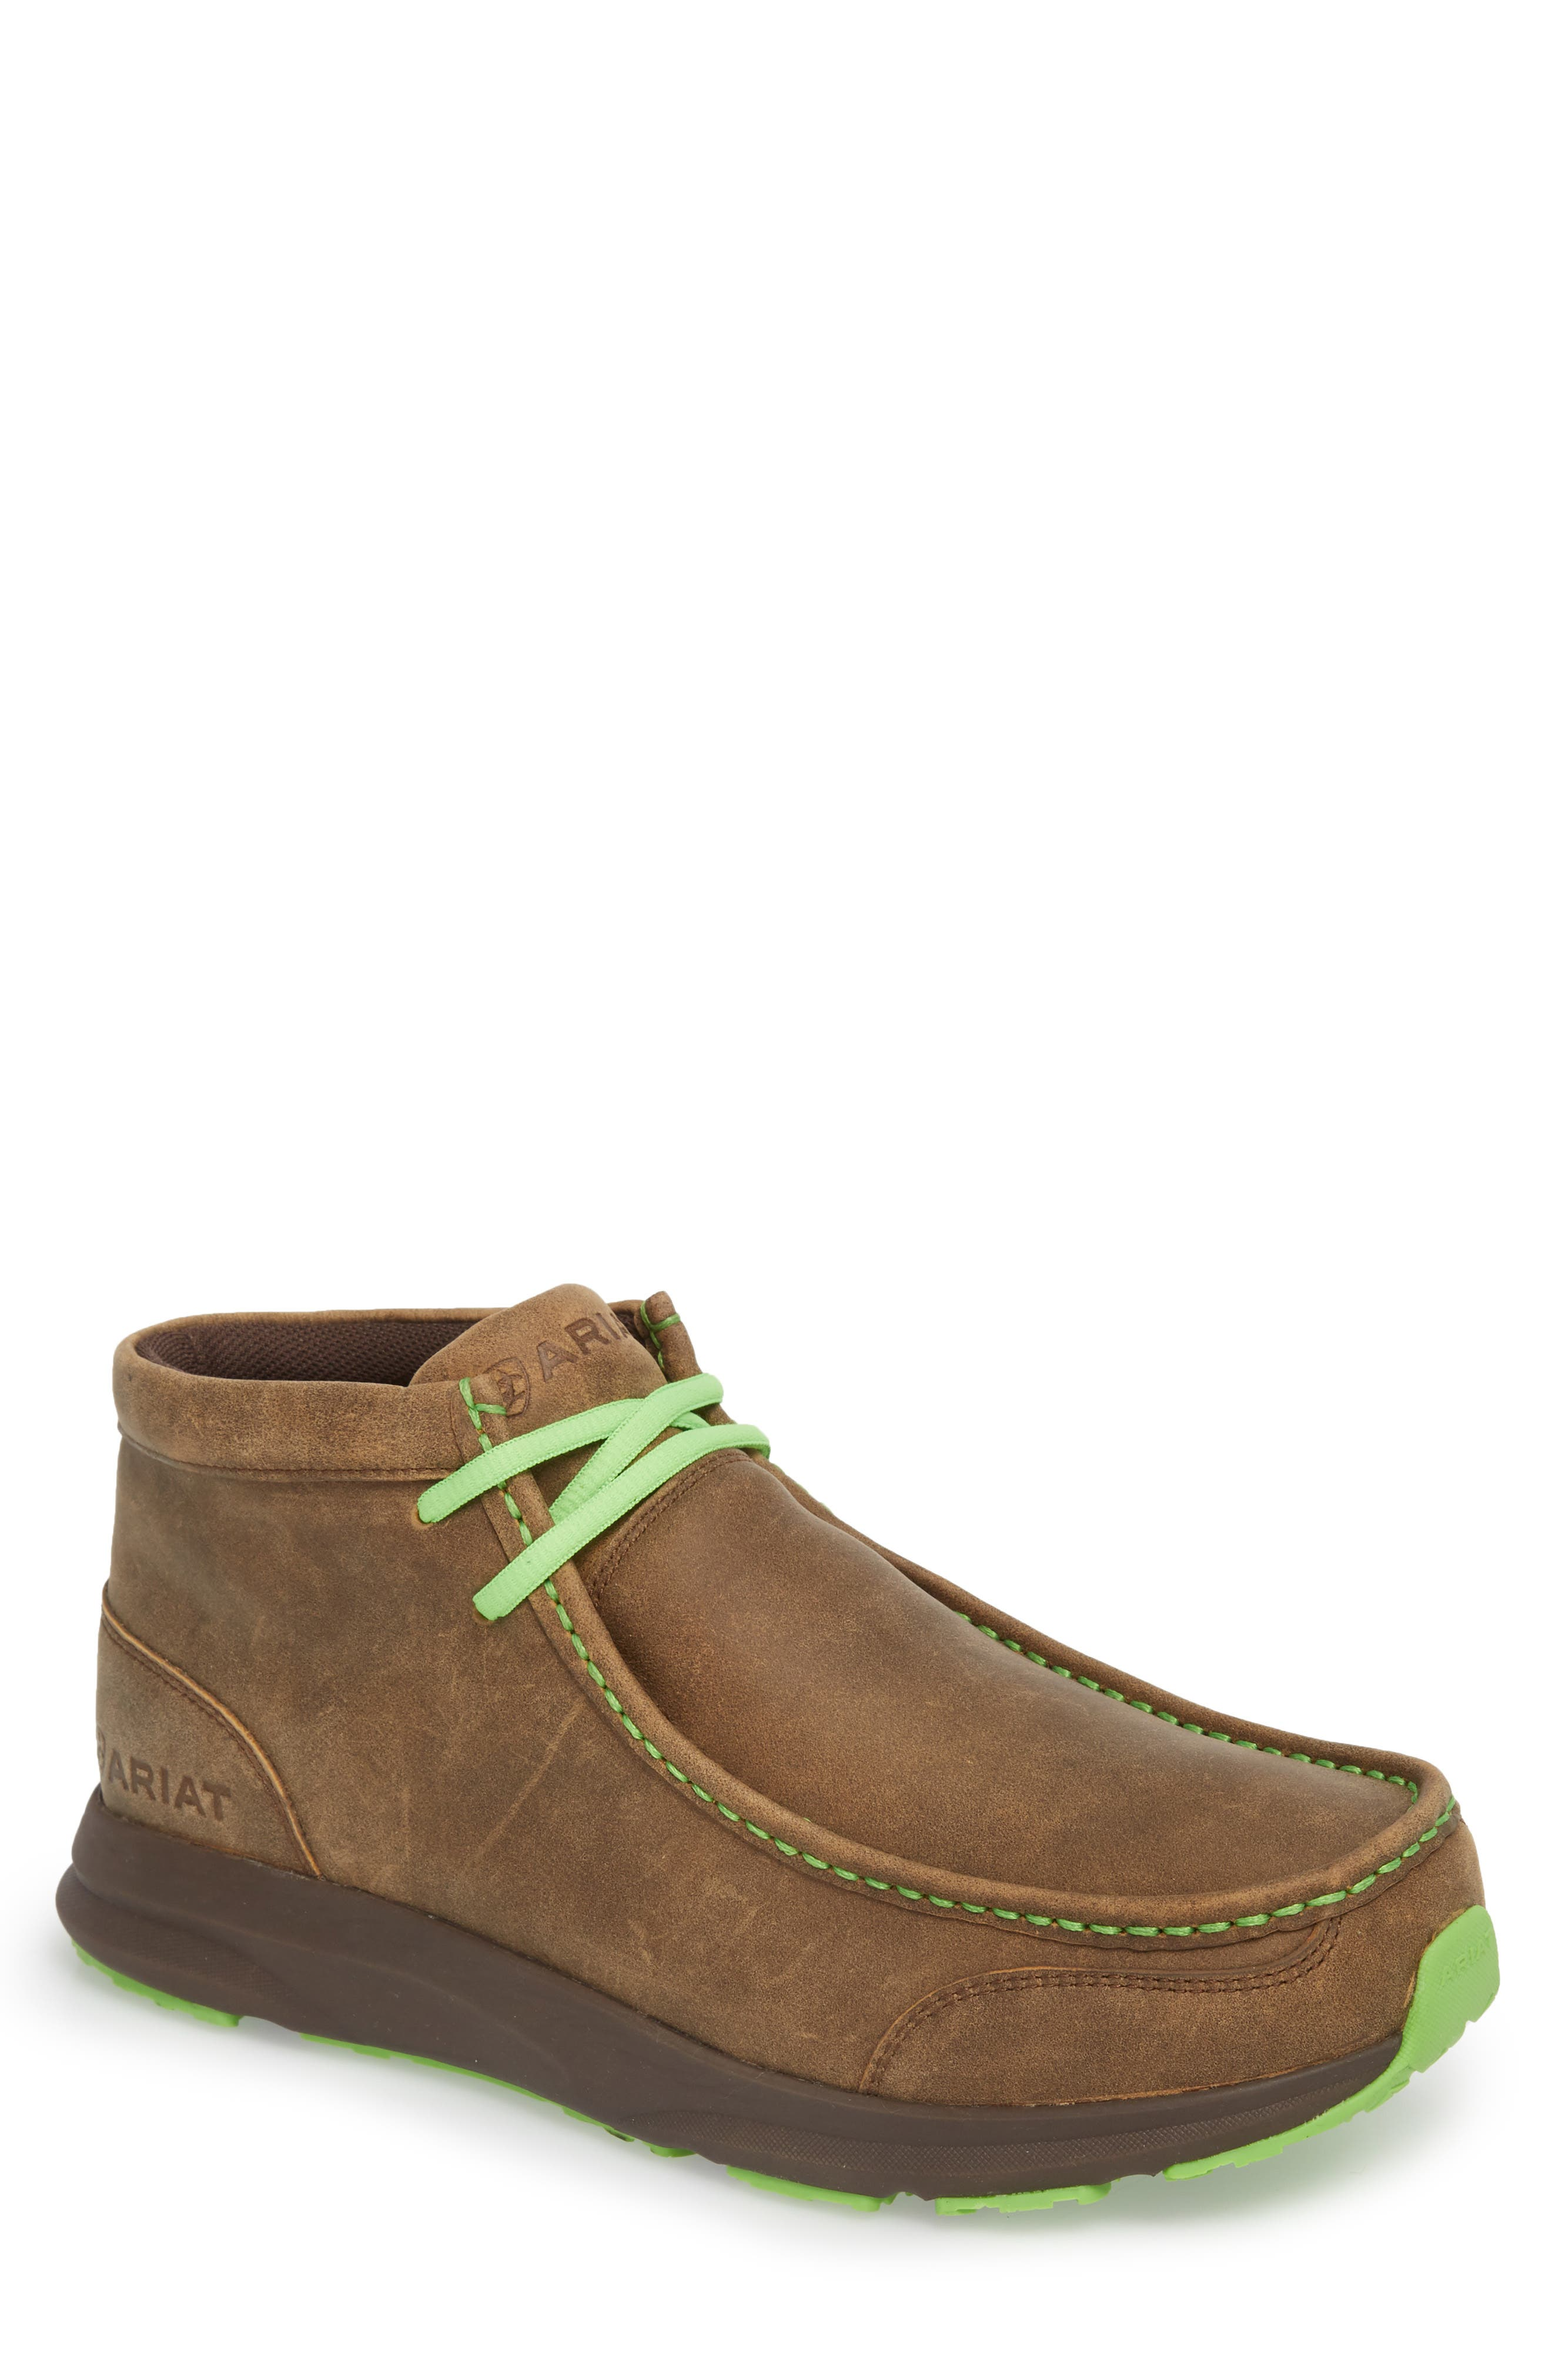 Spitfire Chukka Boot,                             Main thumbnail 1, color,                             Brown Bomber Leather